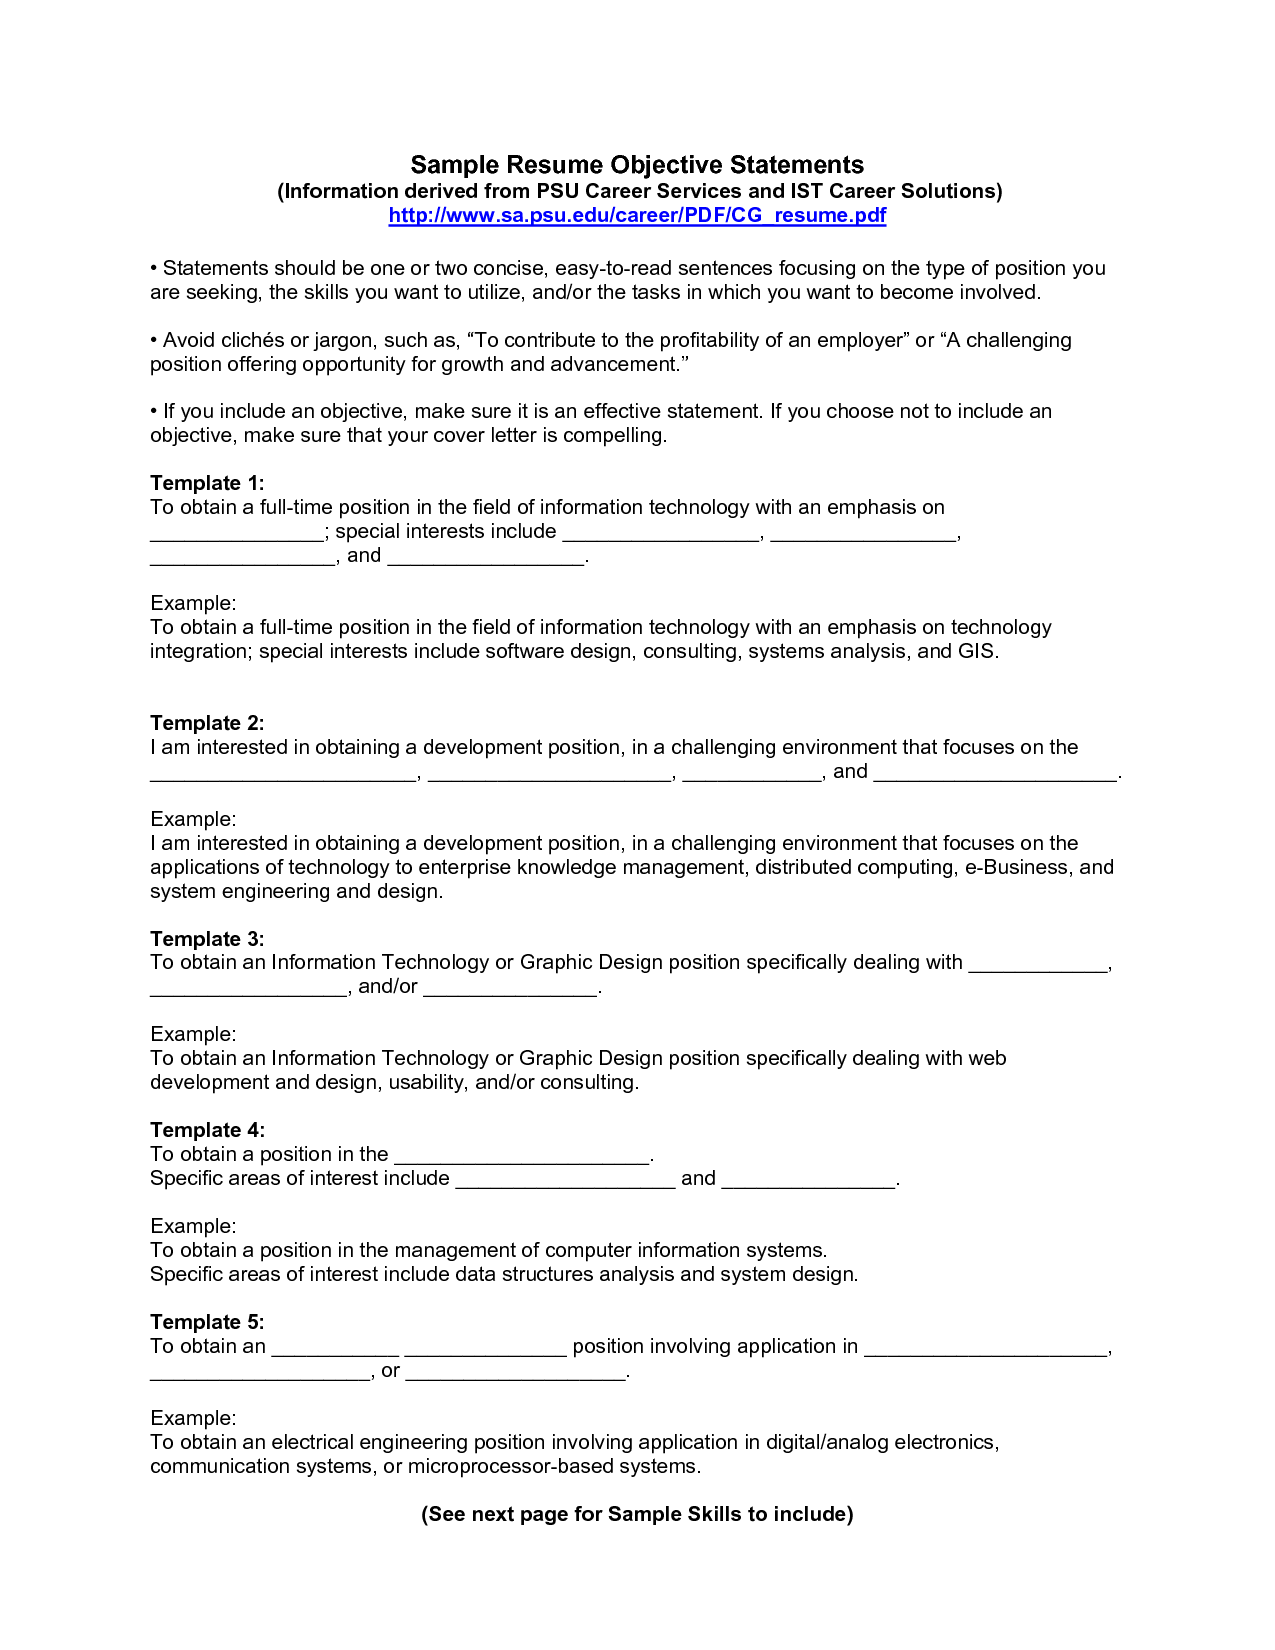 Sample Resume Objective Statement Resume Objective Examplesprofessional Objective Resumes